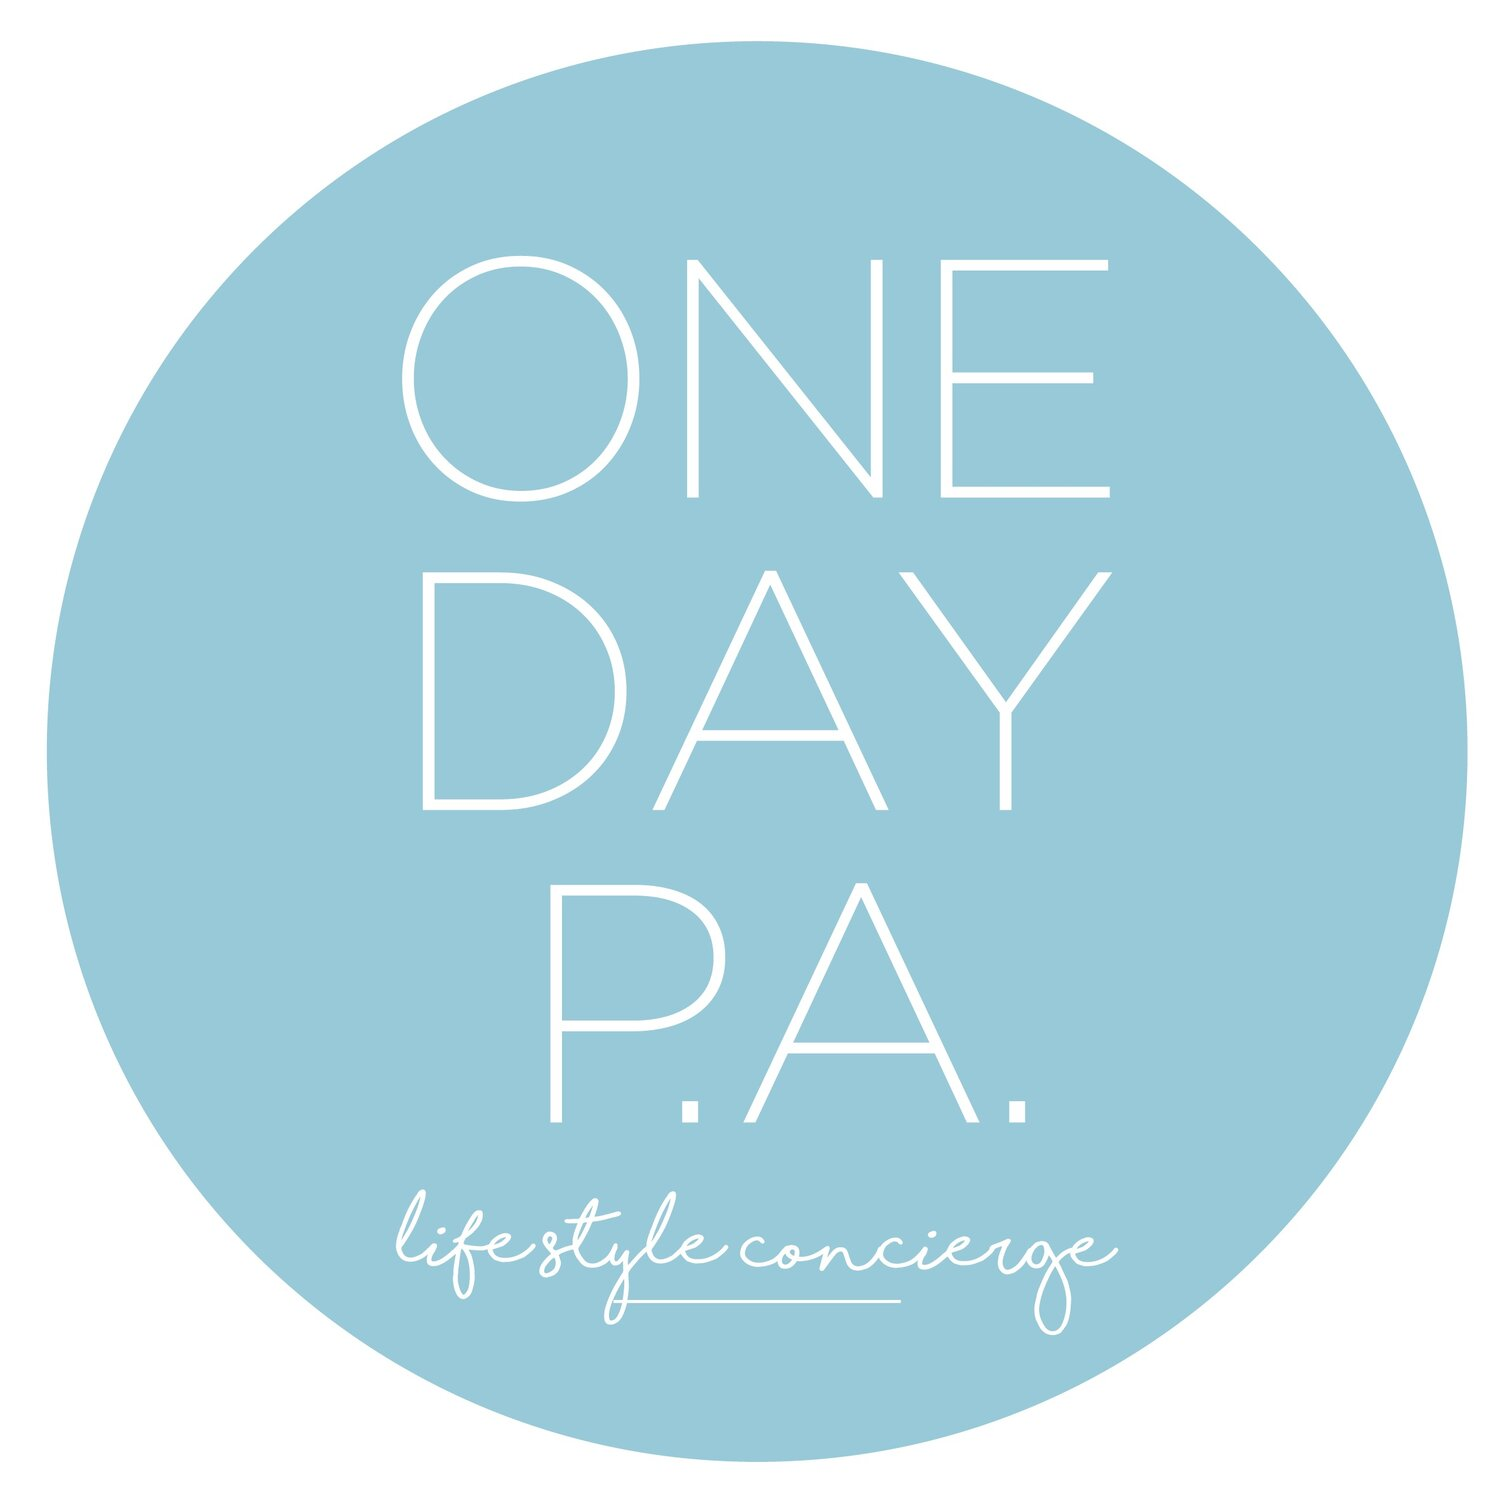 ONE DAY P.A.